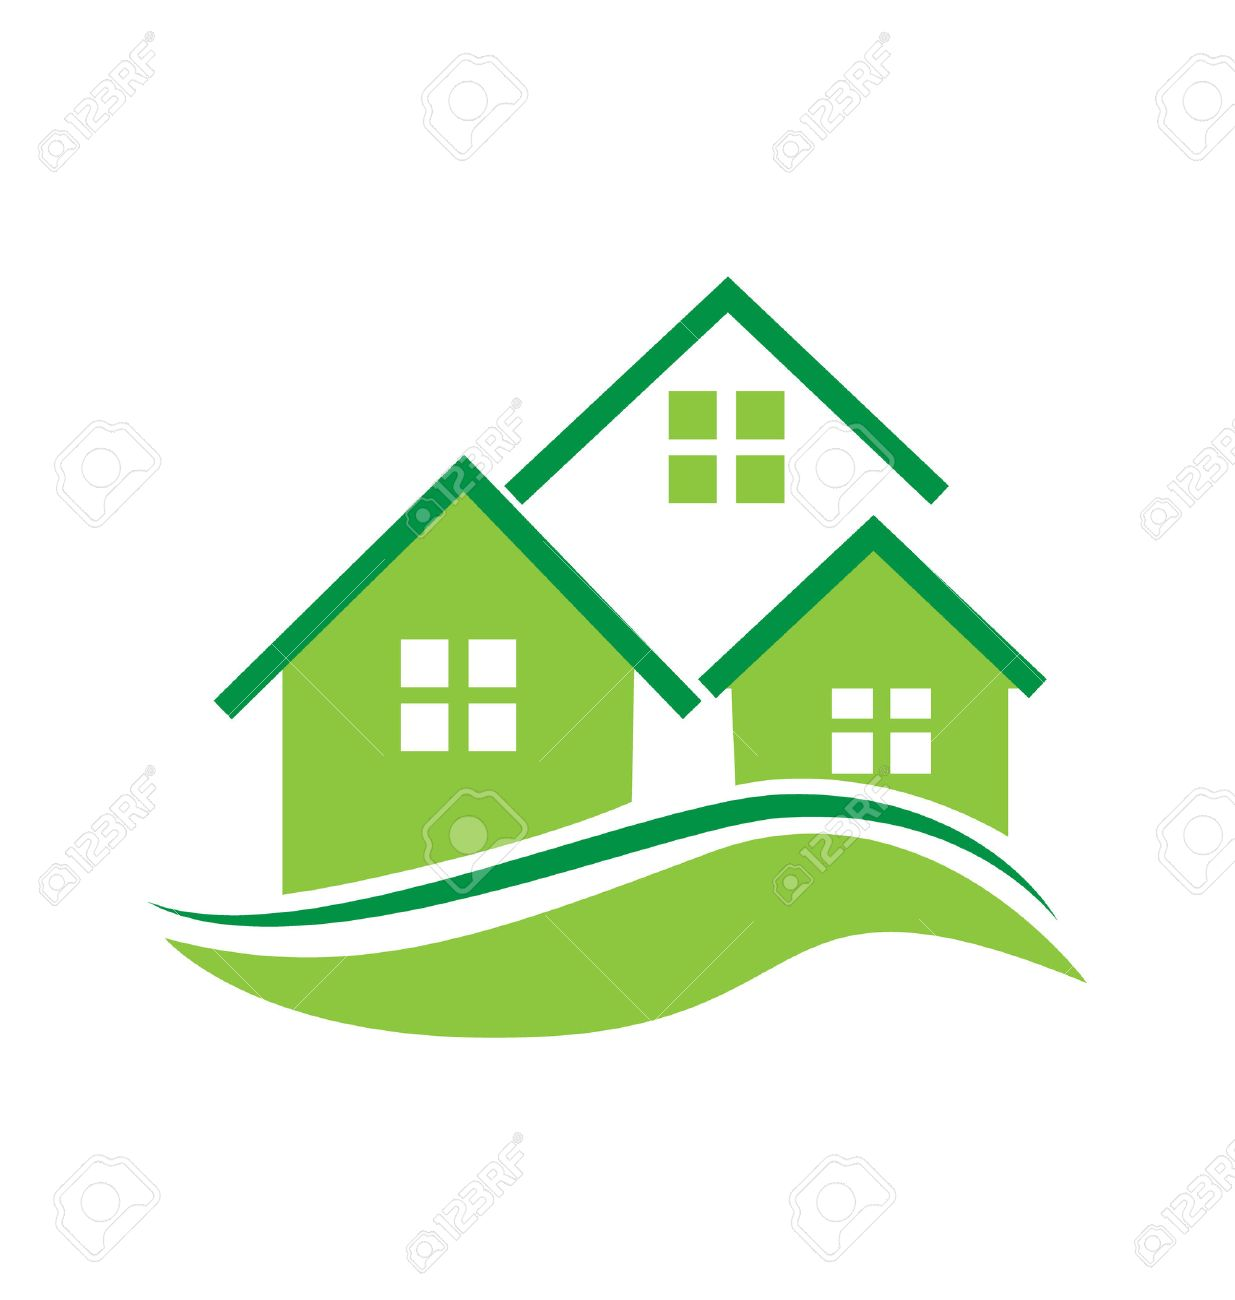 green houses vector icon royalty free cliparts vectors and stock rh 123rf com house vector file house vector icons